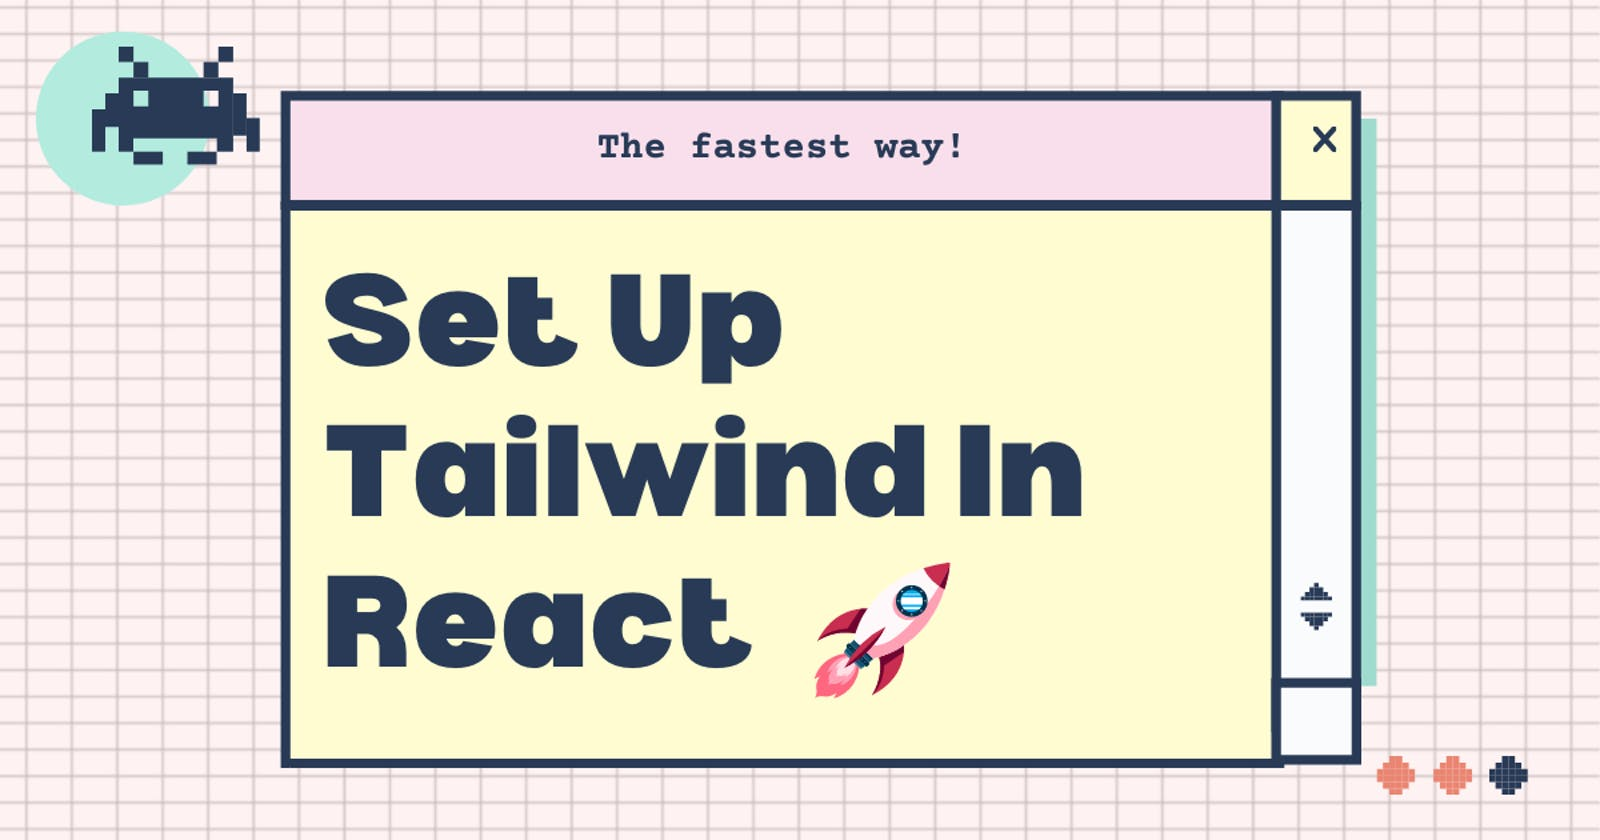 Set Up Tailwind In React - The fastest way! 🚀